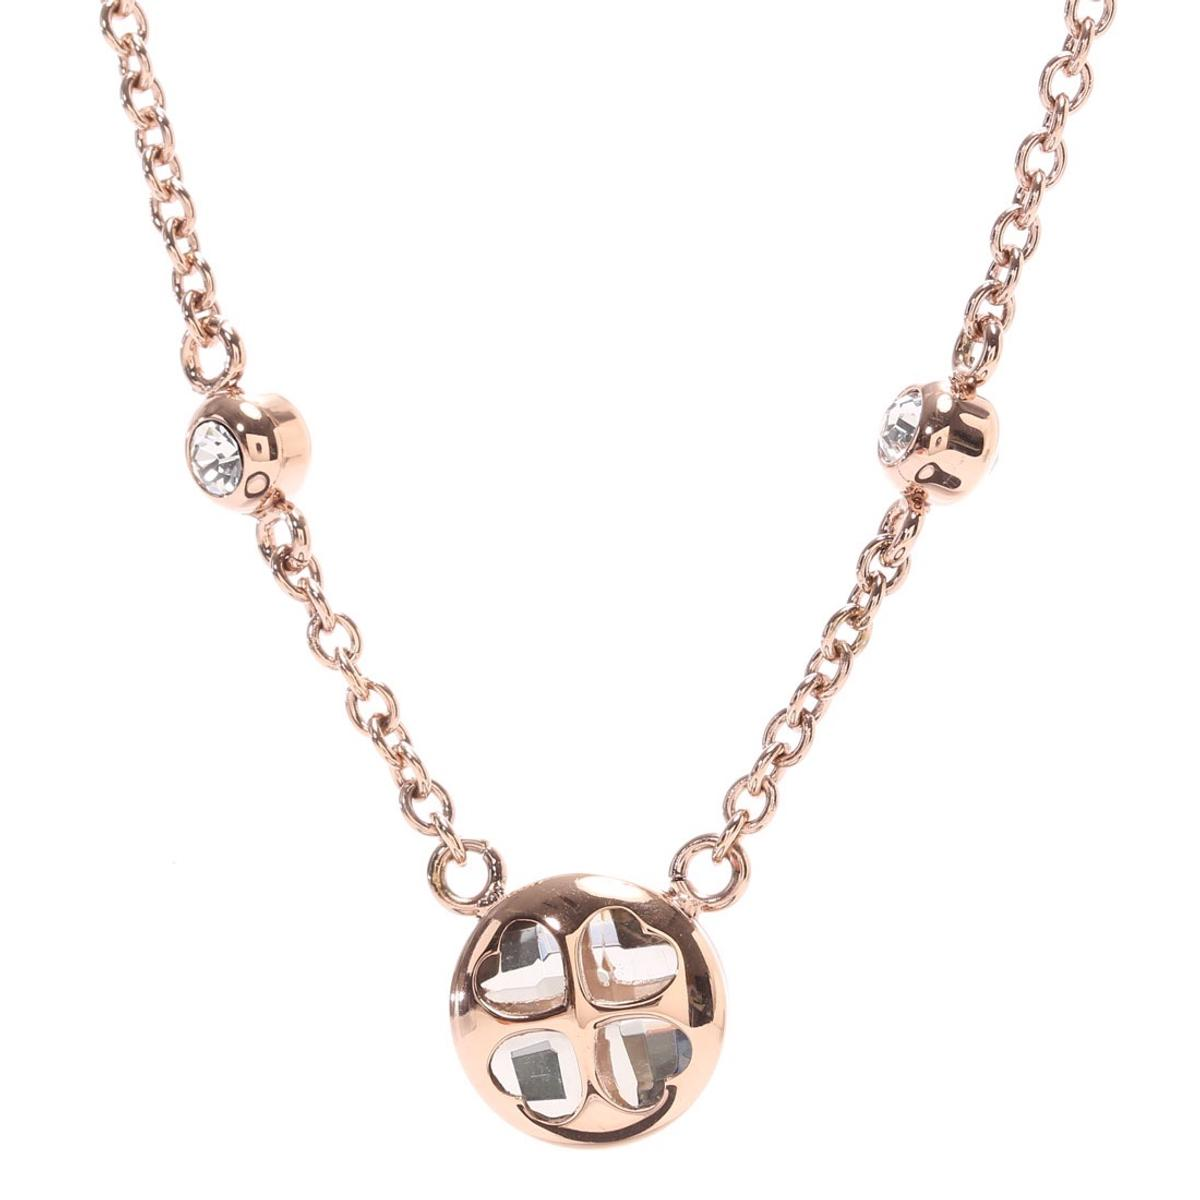 Folli Follie Heart4Heart Win Necklace, Rose Gold plated. An elegant addition to your jewellery collection, with a timeless design crafted in a trendy Rose Gold plated metal, this necklace from Folli Follie is a must have. The pendant features the brand's iconic mini four hearth motif in champagne crystal stones completed with a simple 42cm long chain. Perfect condition no marks or scratches. RP£85